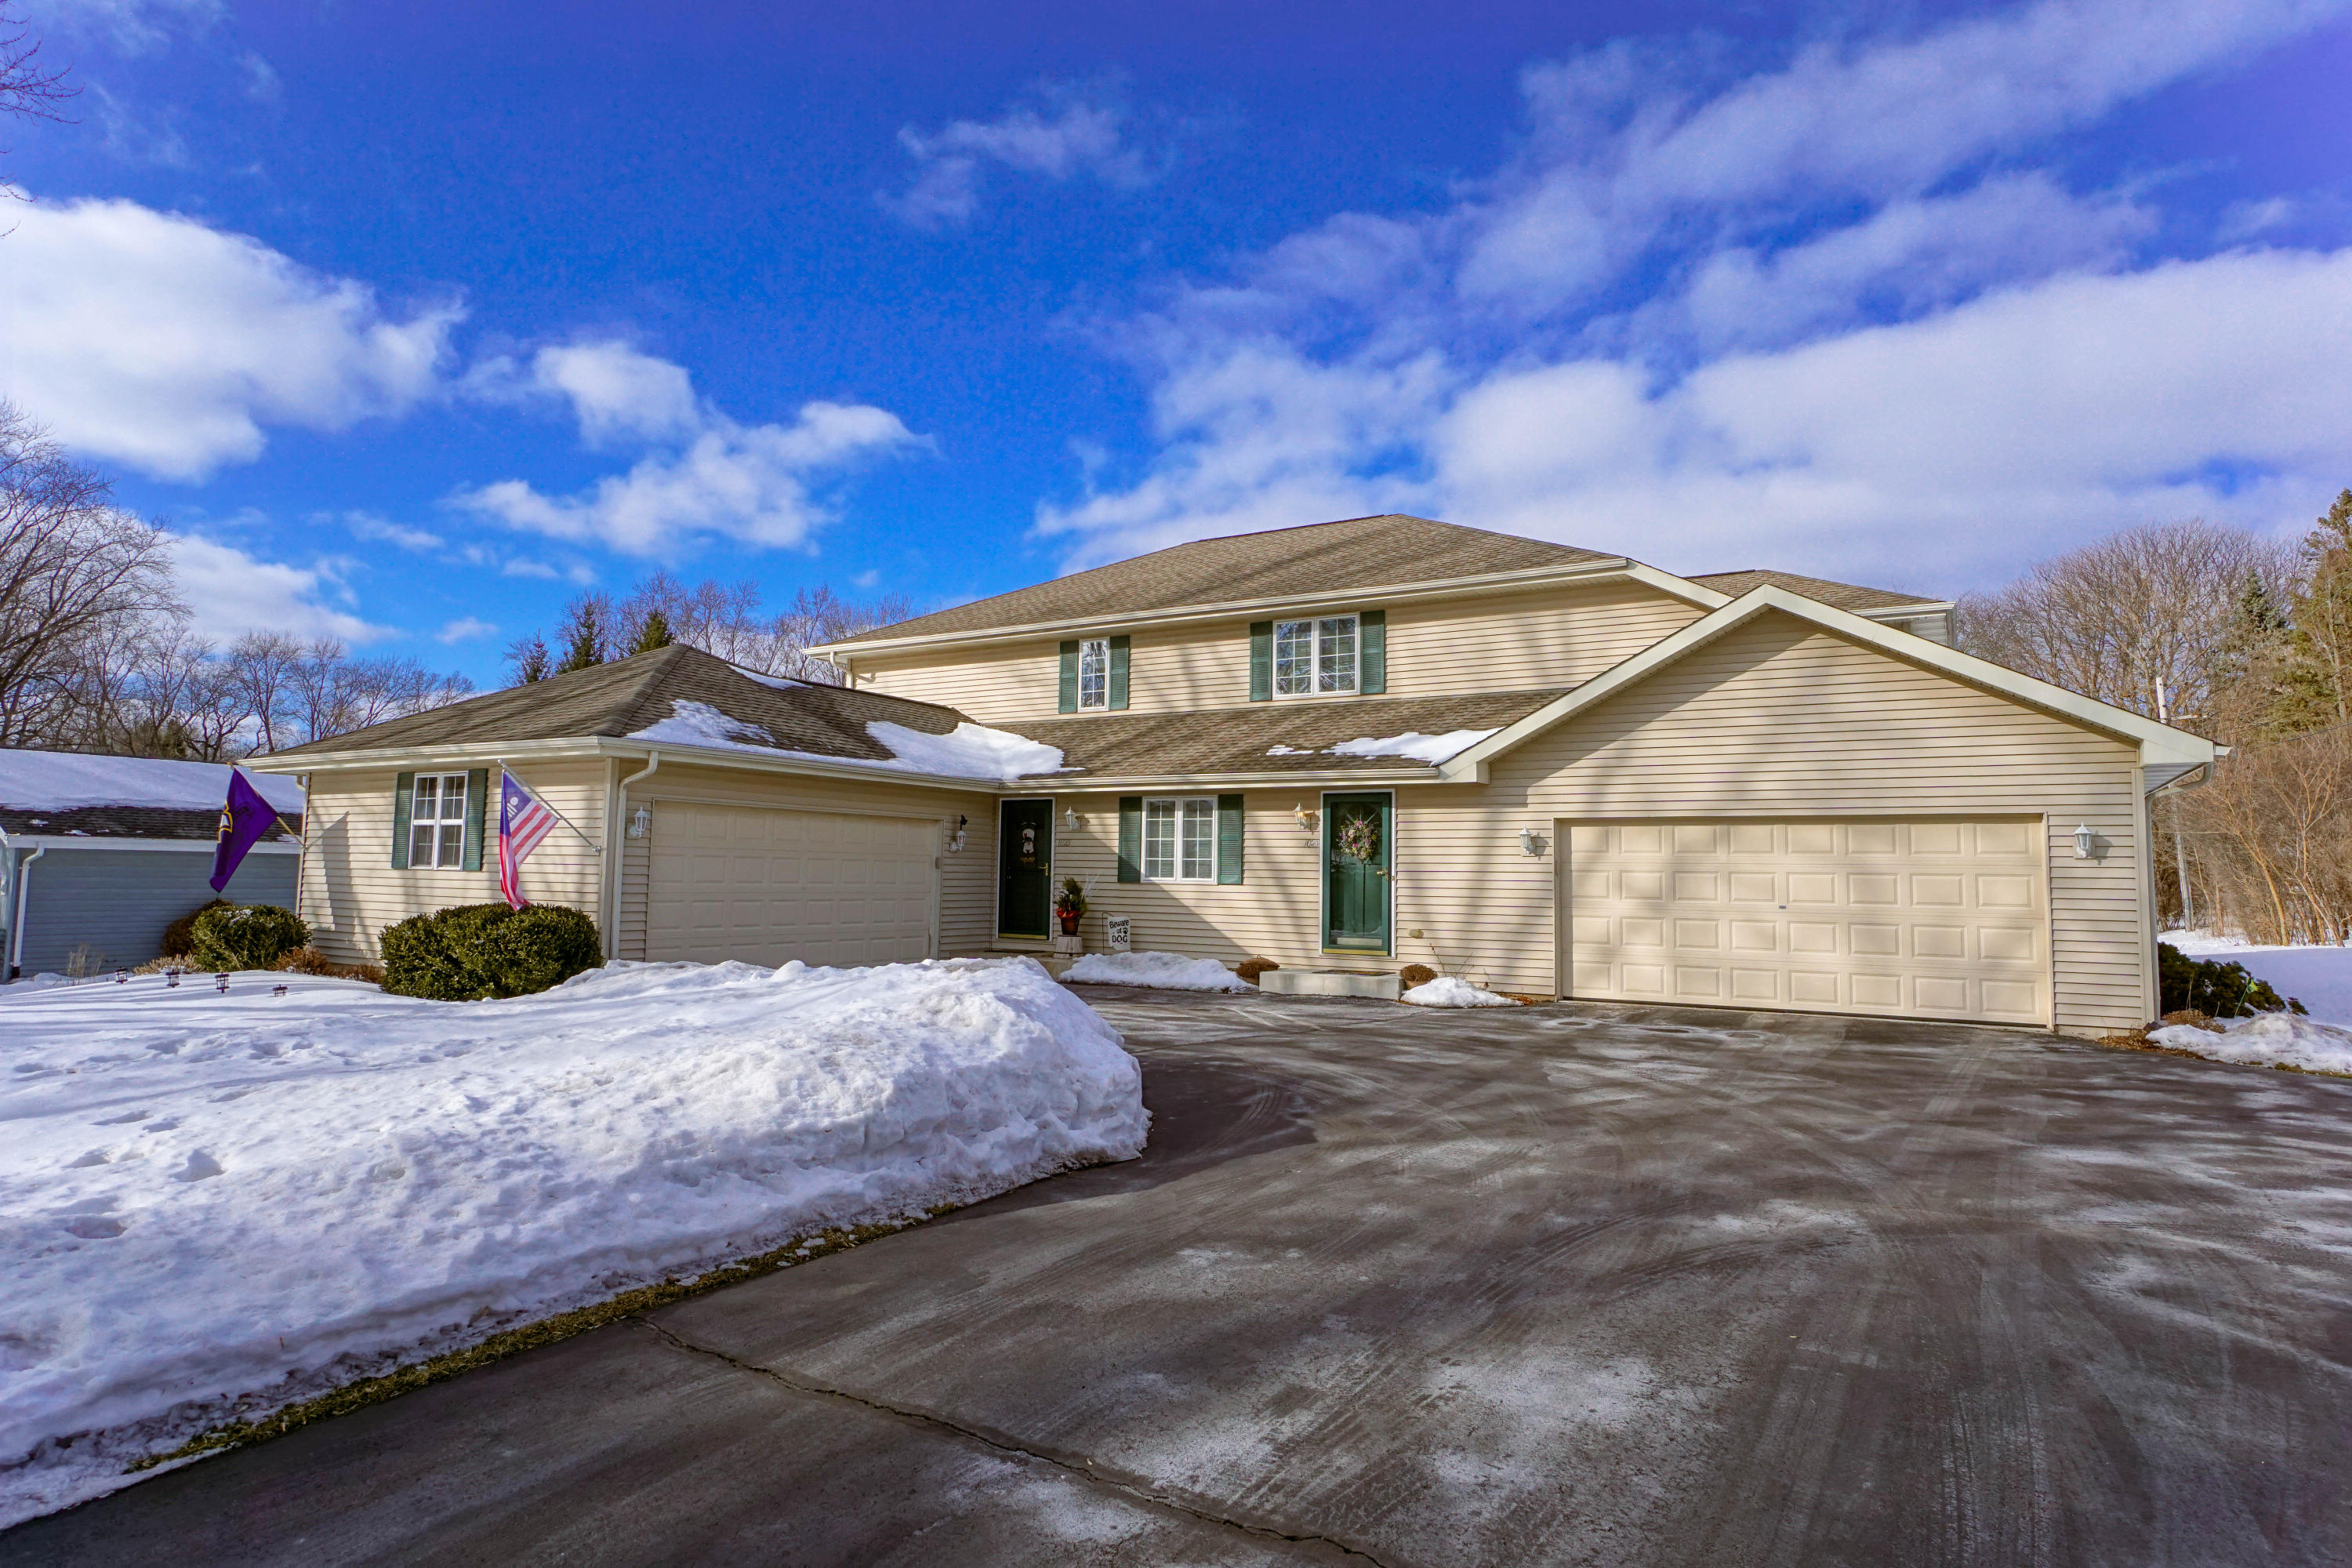 1023 Sunset Dr, Delafield, Wisconsin 53018, 3 Bedrooms Bedrooms, 8 Rooms Rooms,2 BathroomsBathrooms,Condominiums,For Sale,Sunset Dr,1,1623066